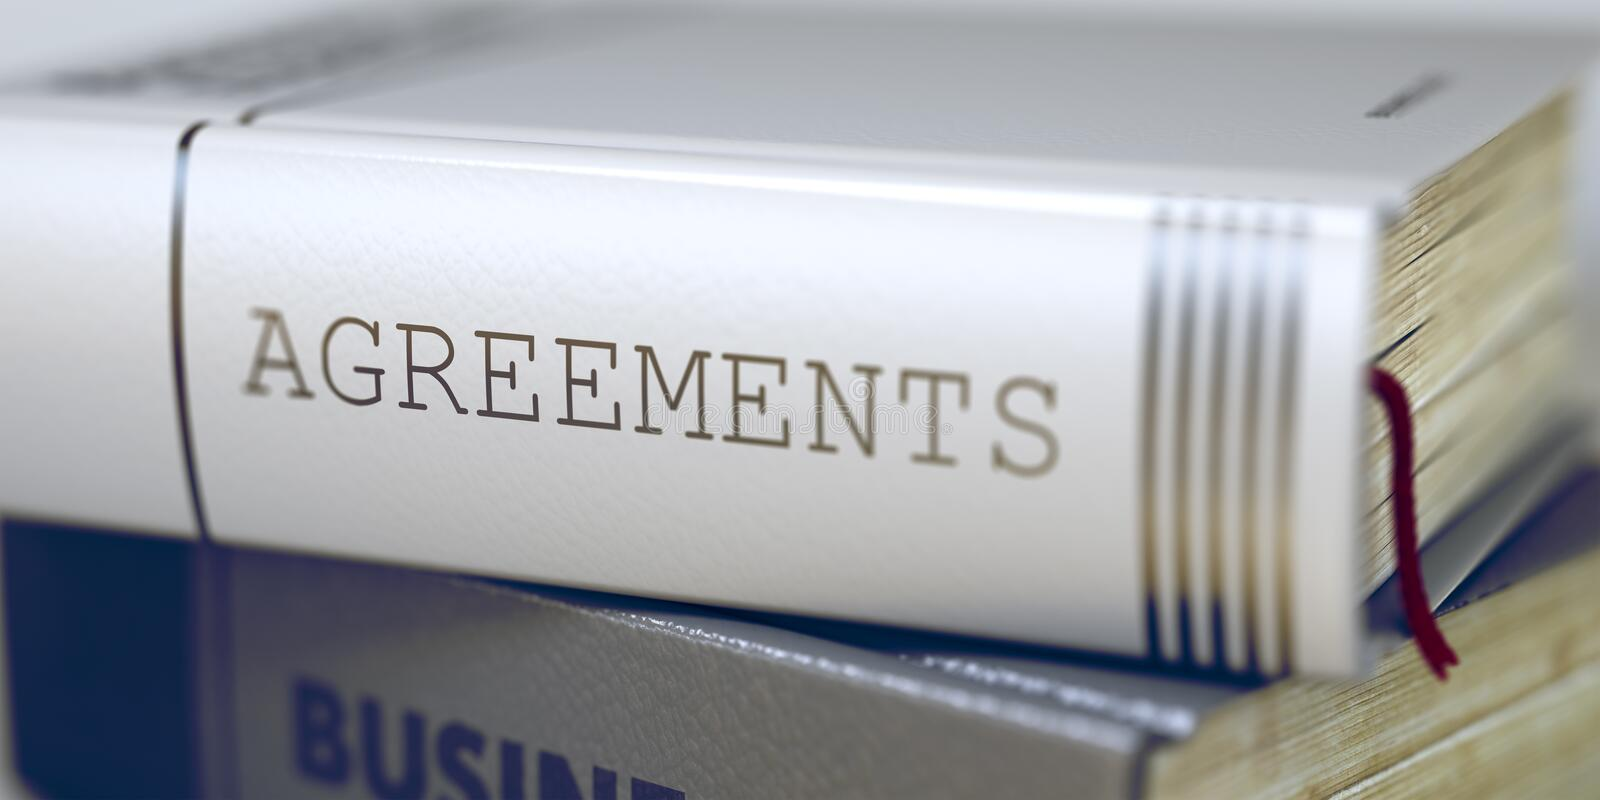 Agreements - Business Book Title. 3D. Agreements - Closeup of the Book Title. Closeup View. Business Concept: Closed Book with Title Agreements in Stack stock photo